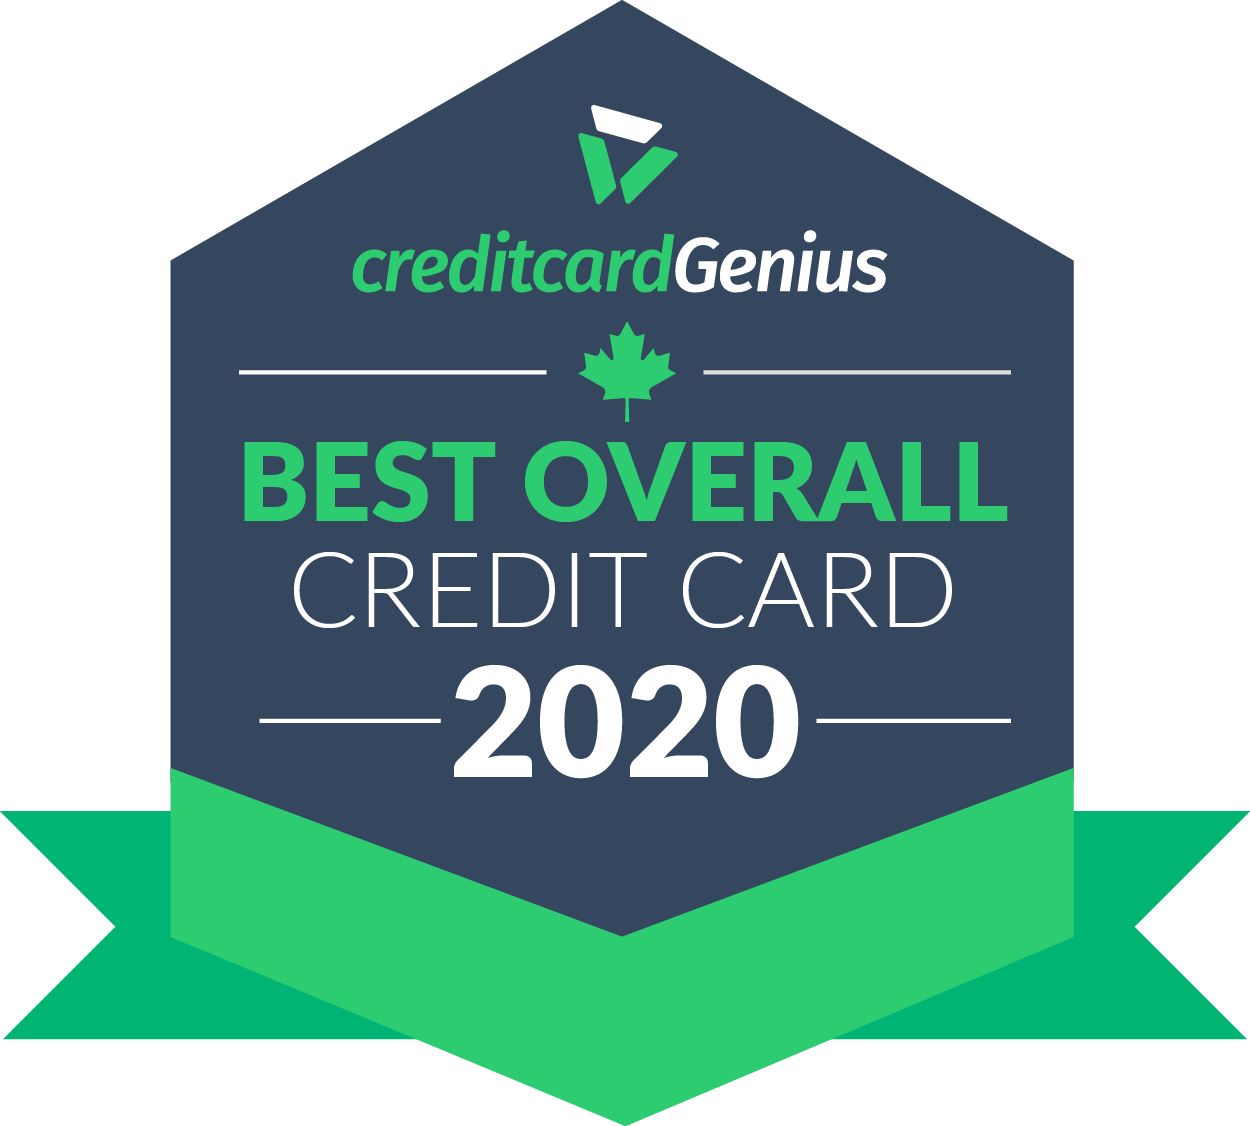 Best overall credit card in Canada for 2020 award seal